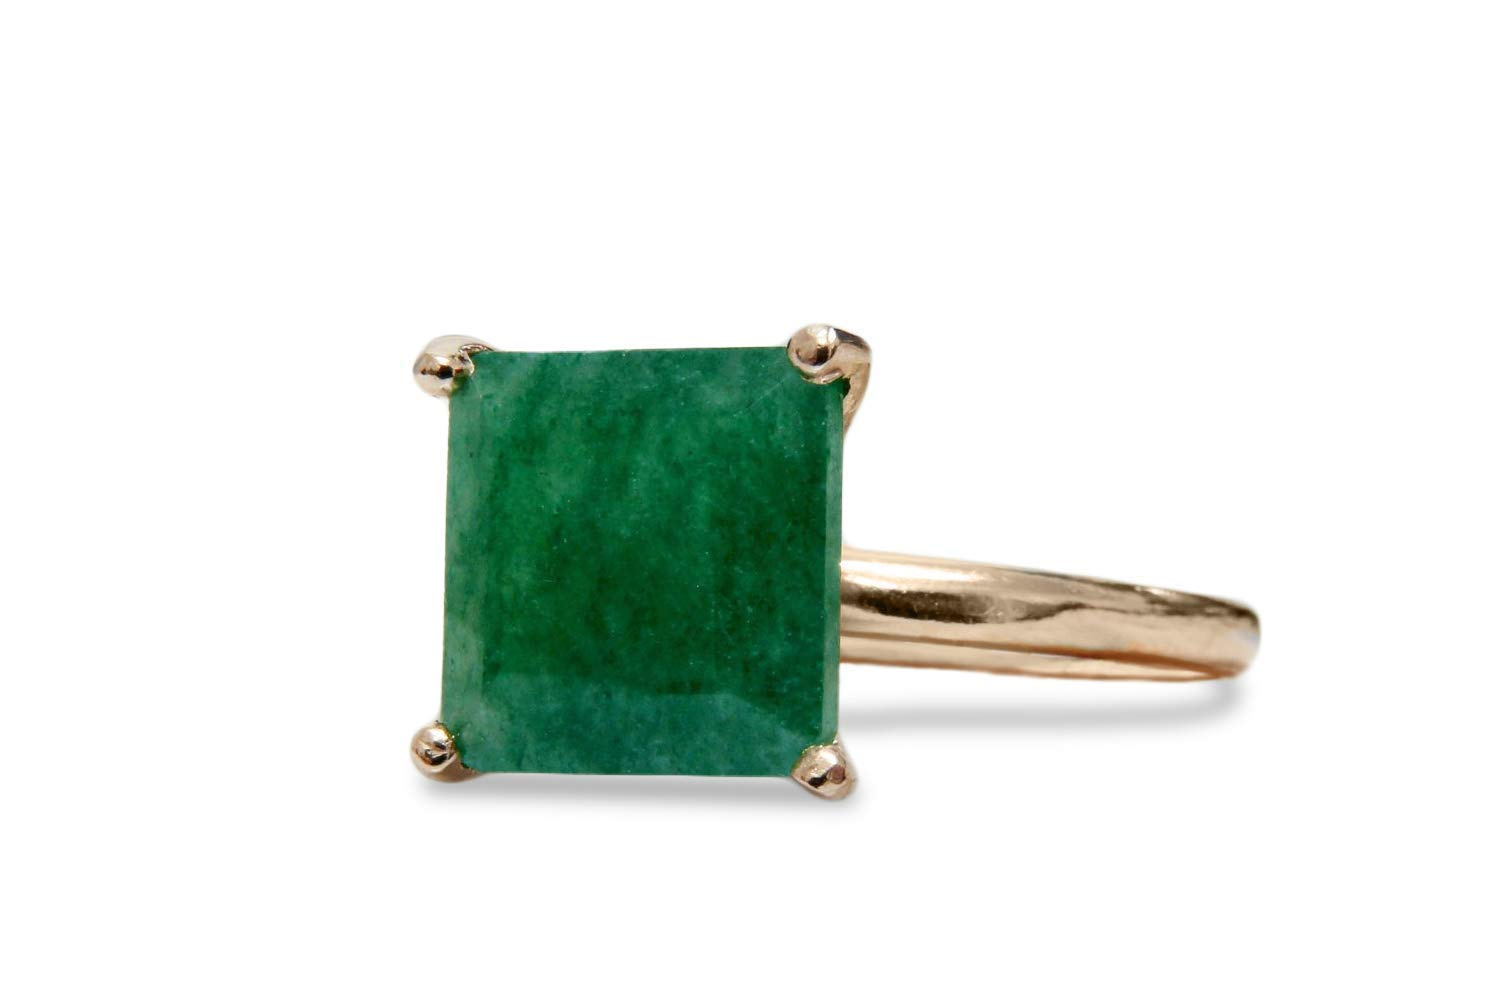 14K Solid Gold /& Sterling Silver Ring With Aventurine Gem